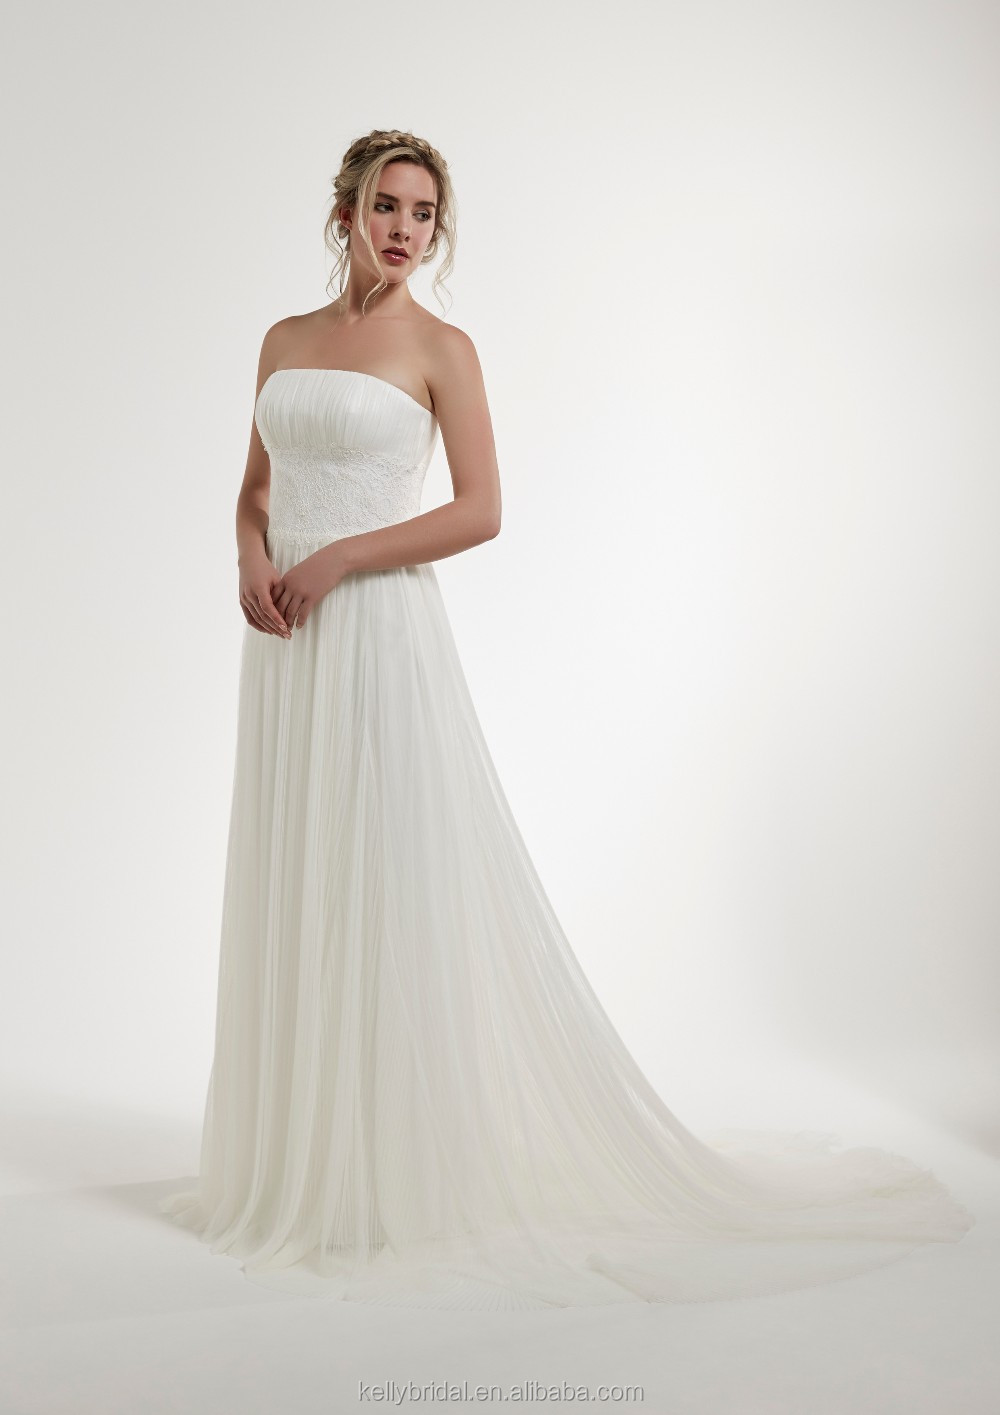 Zm16130 New Arrival A Line Wedding Dresses With Sweetheart Neckline ...